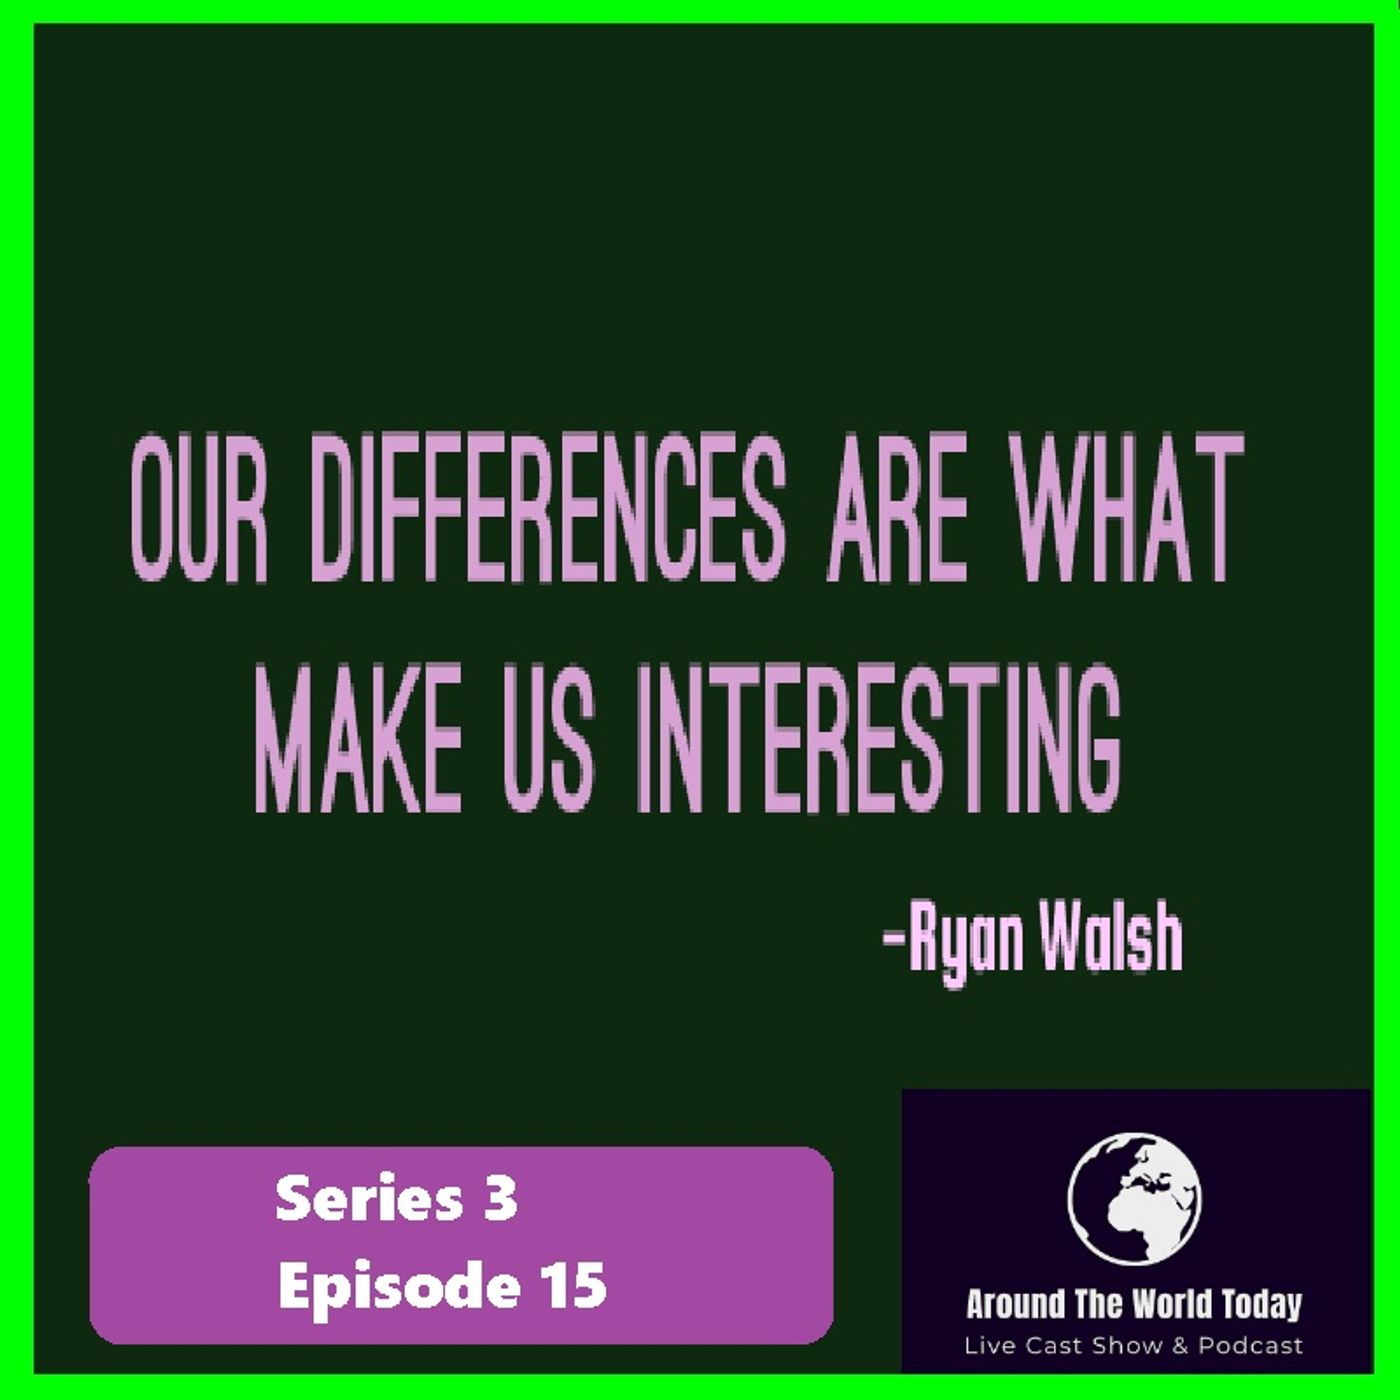 Around the world today Series 3 Episode 15 - differences that sometimes make us grate